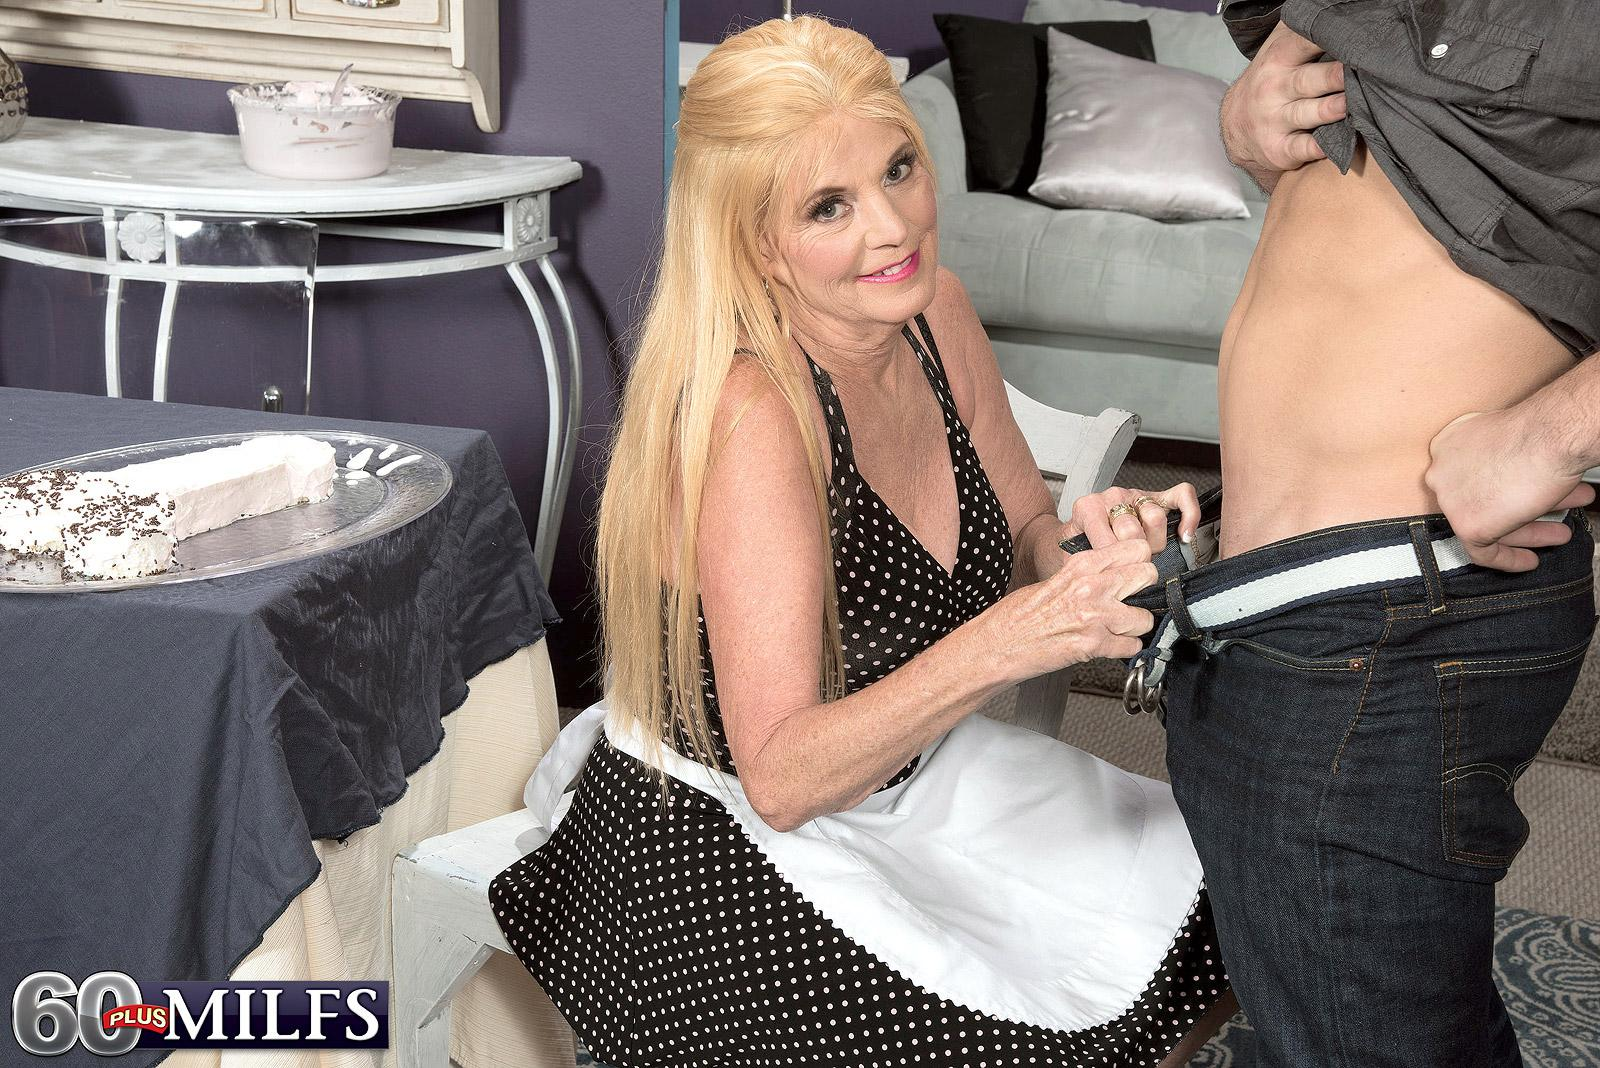 Dressed ash-blonde over Sixty MILF Charlie giving CFNM handjob to immense penis